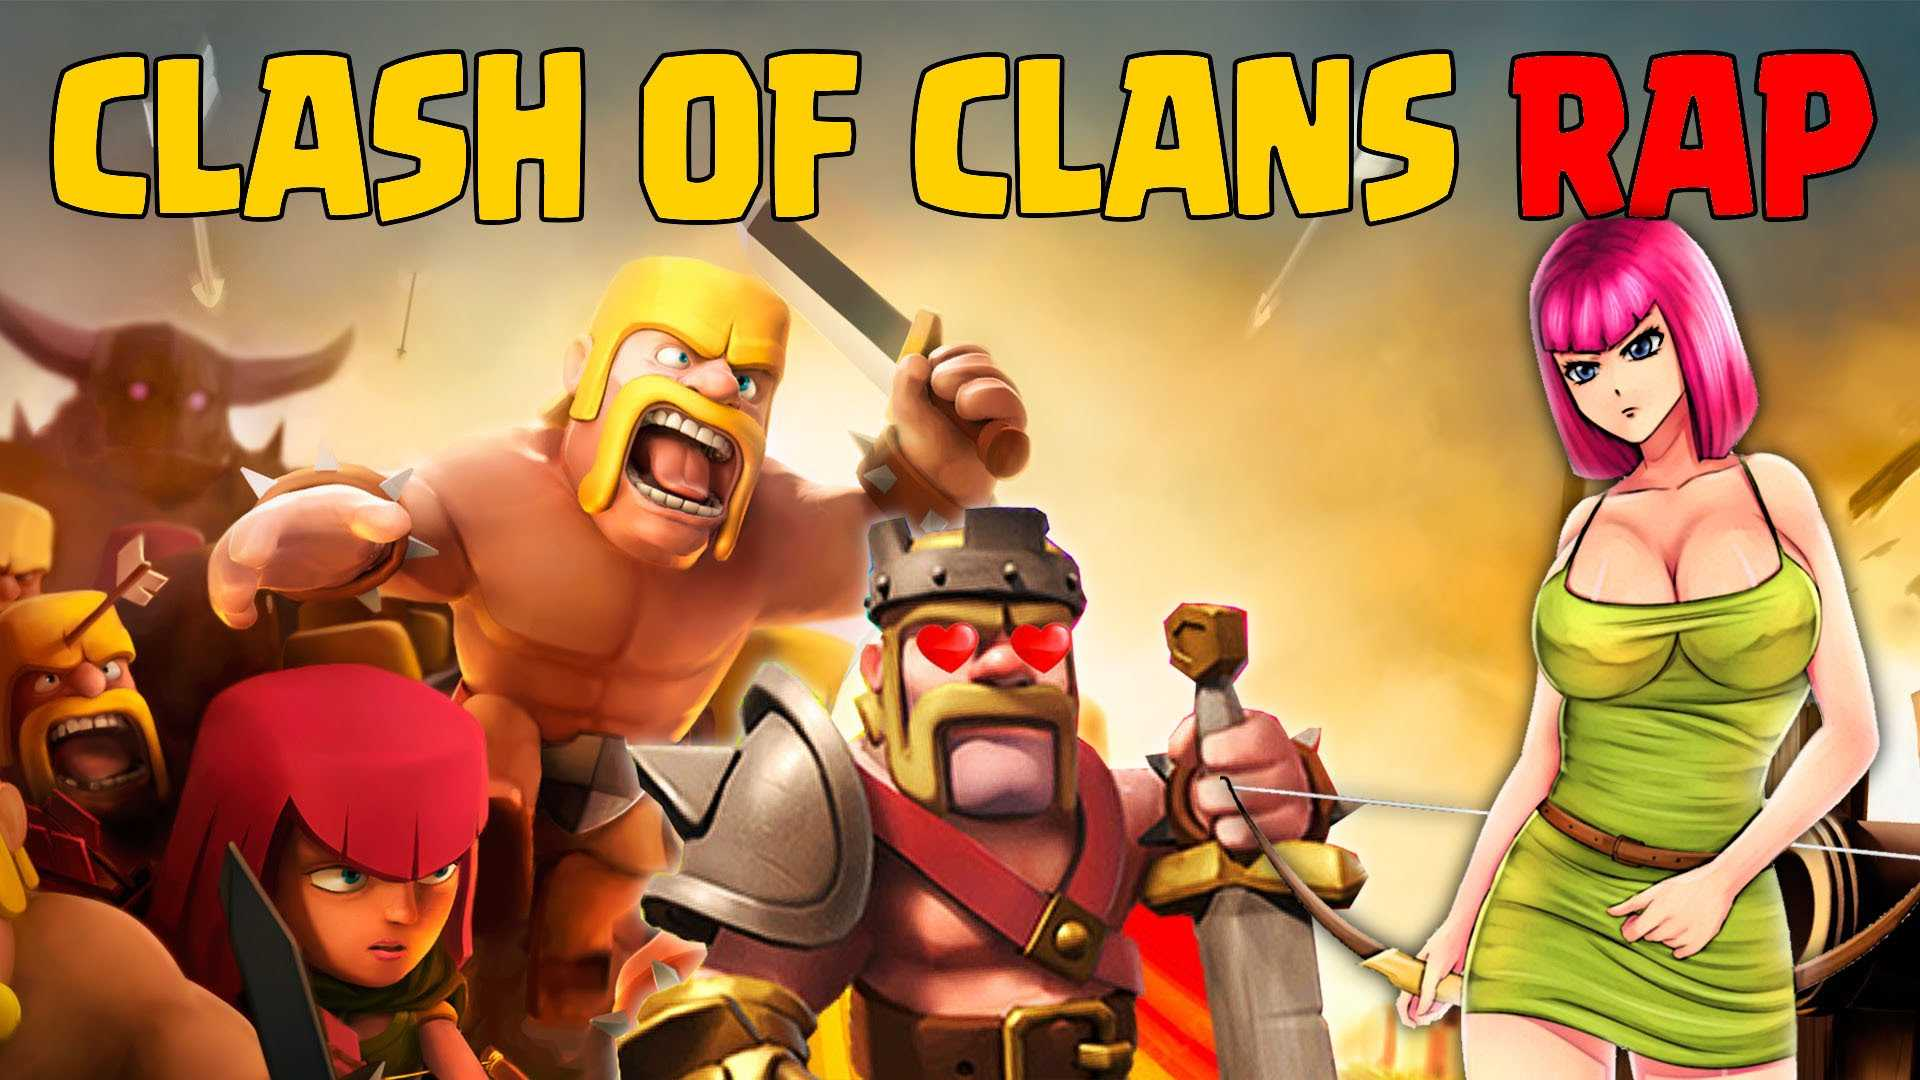 Wallpapers Of Clash Of Clans